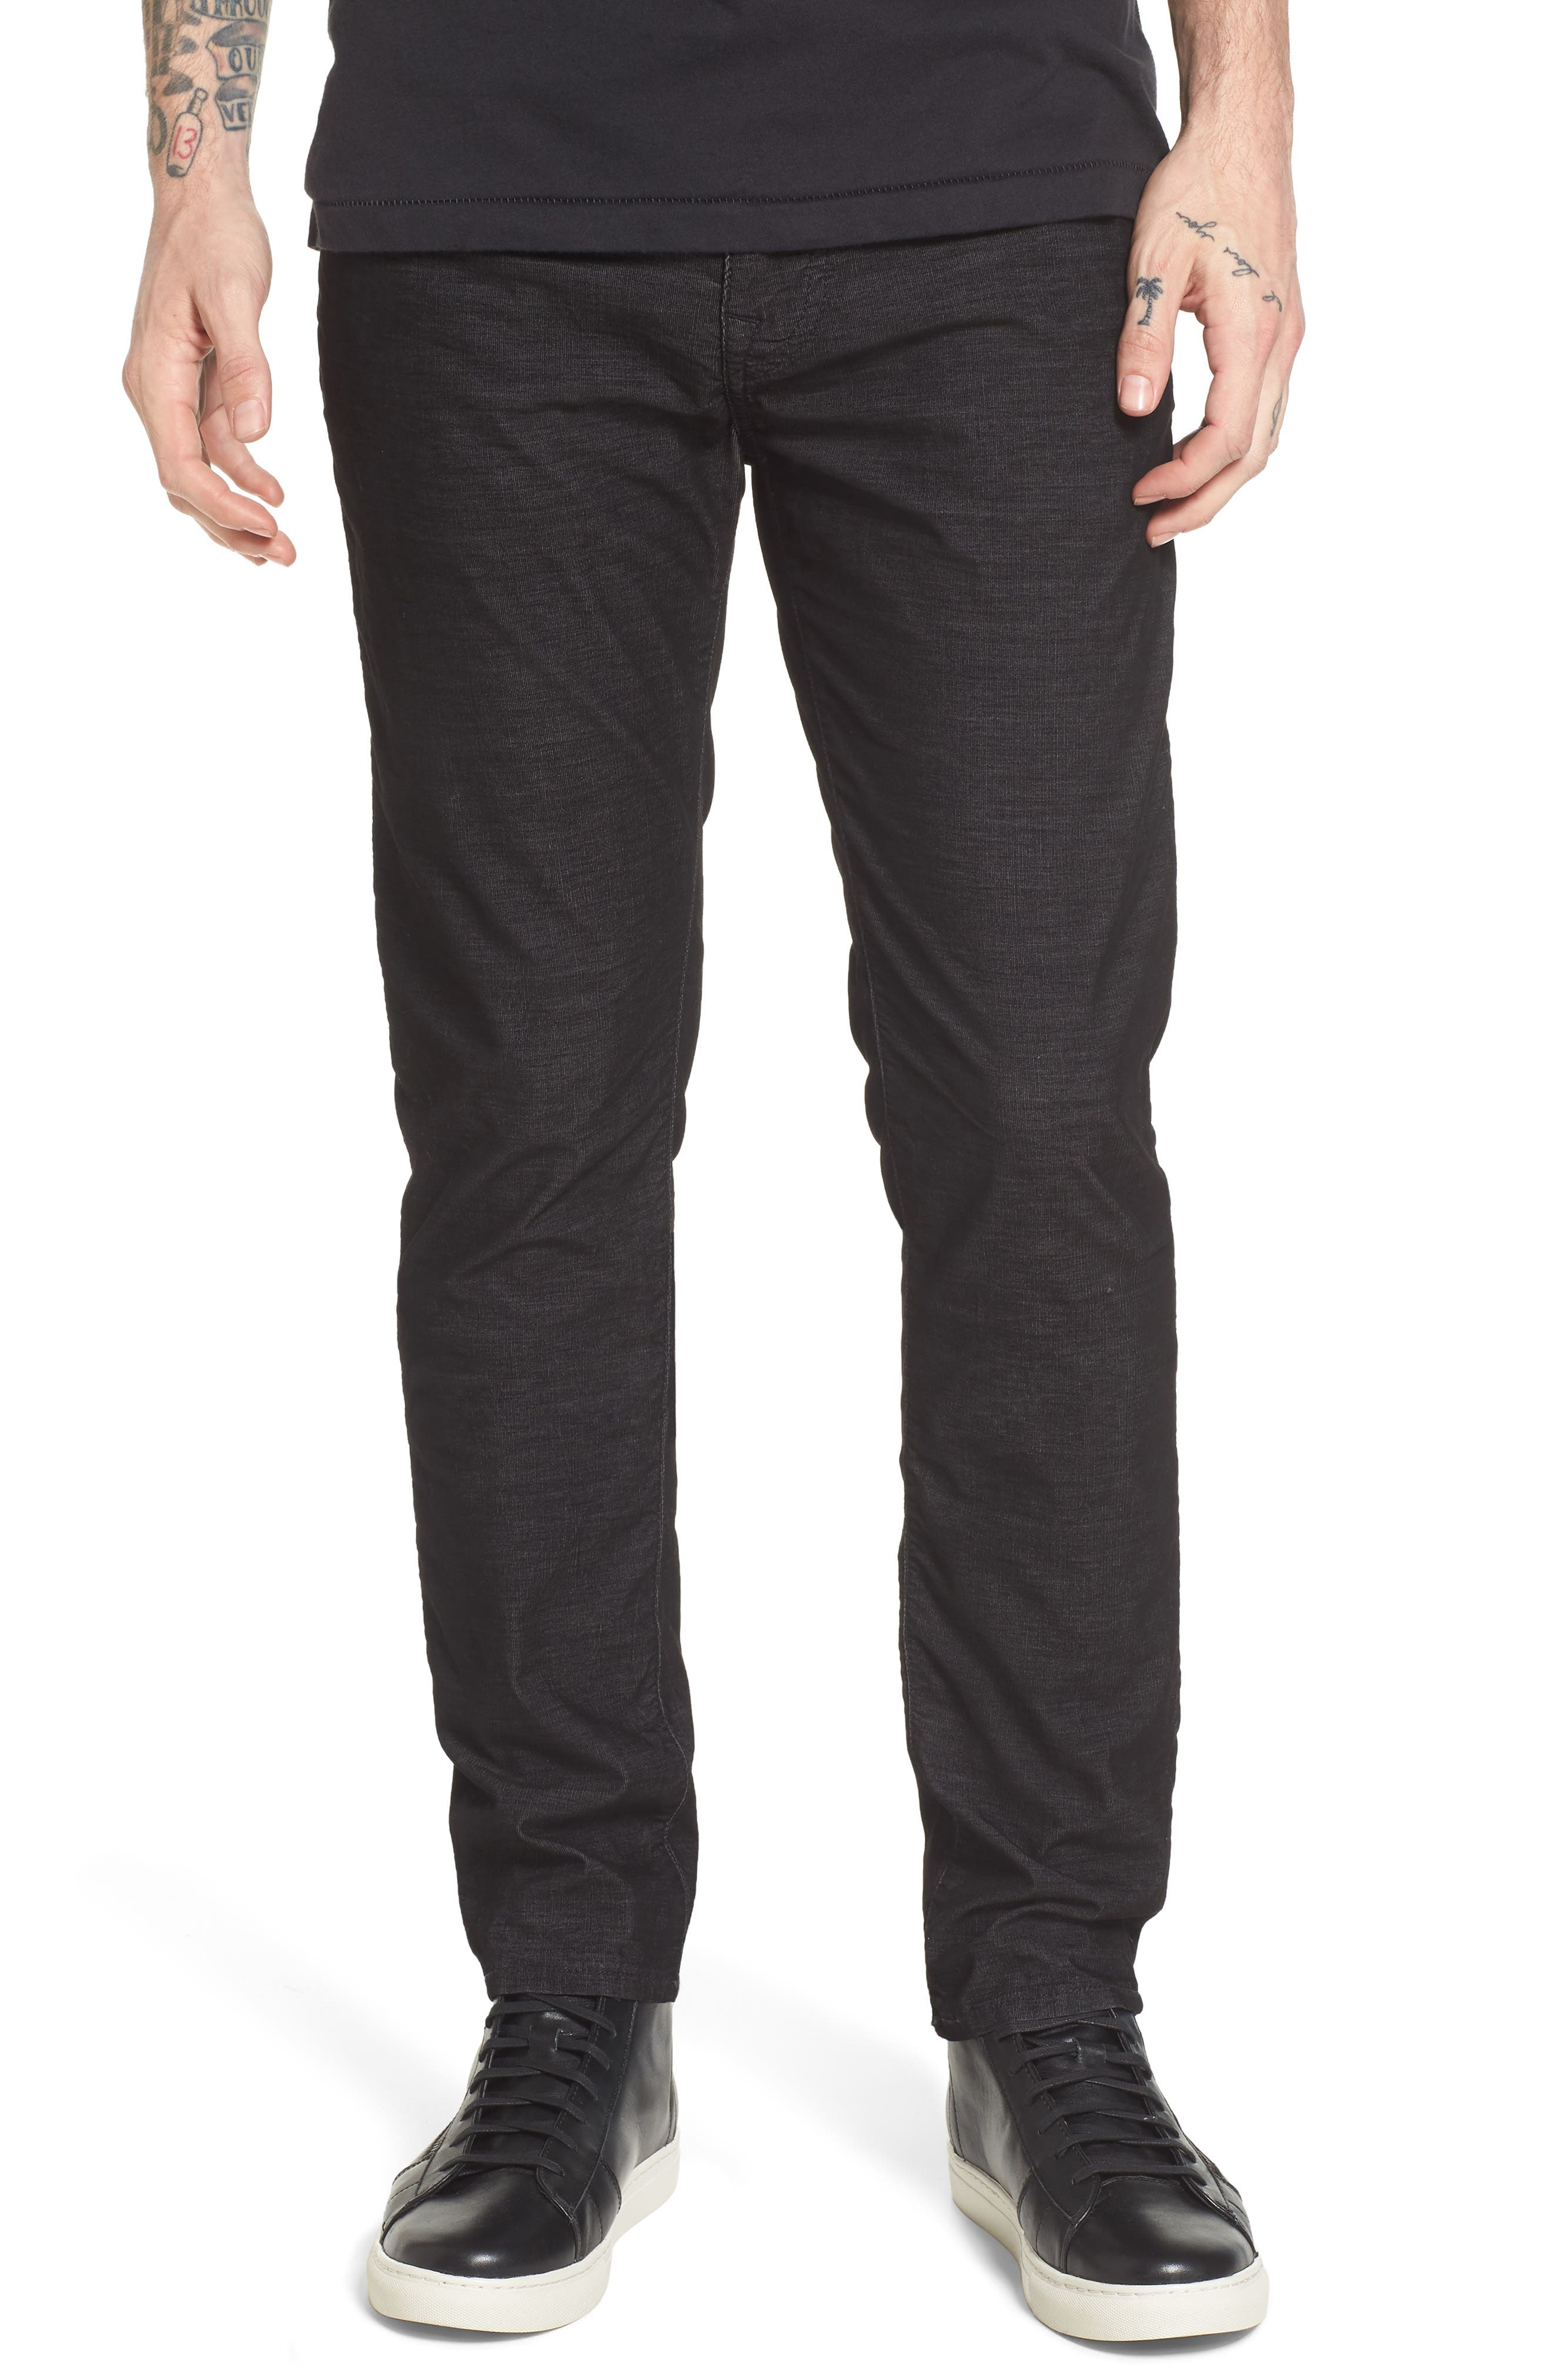 Main Image - True Religion Brand Jeans Rocco Skinny Fit Corduroy Jeans